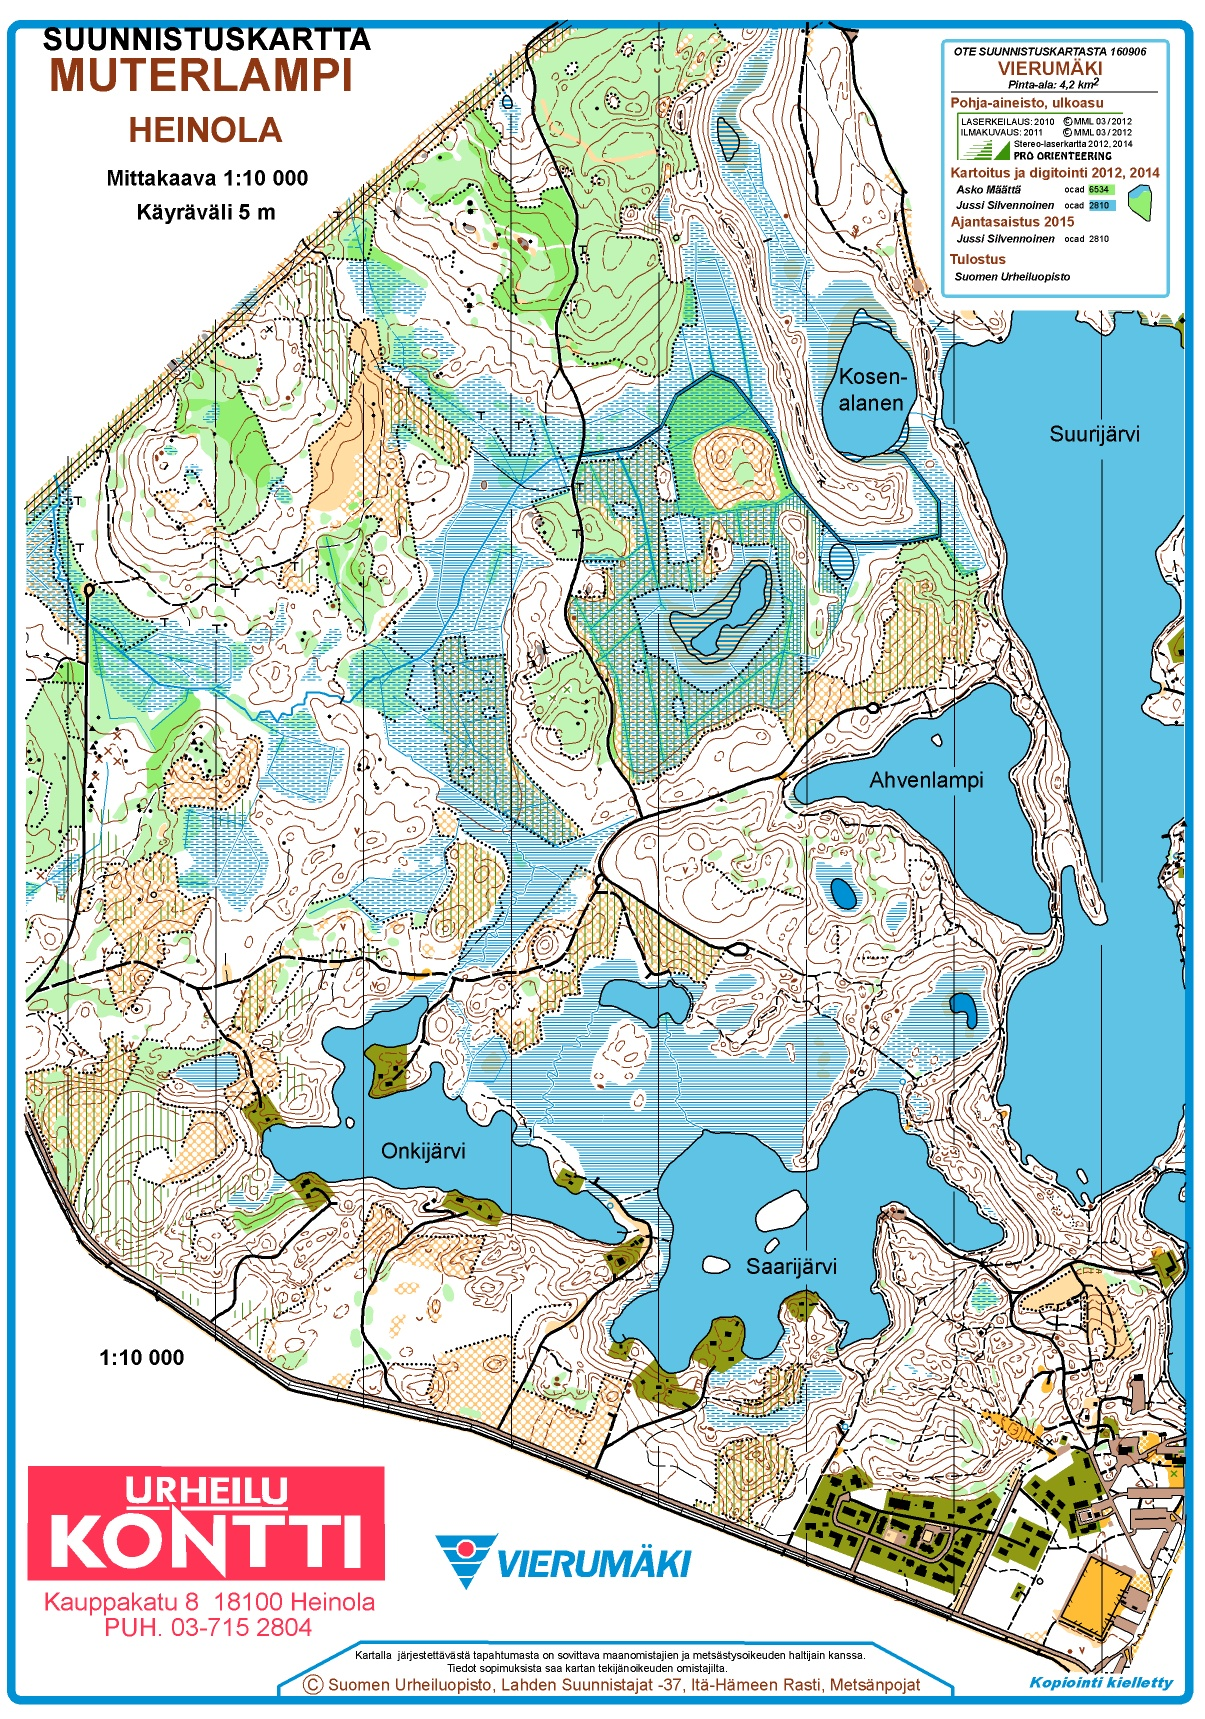 Ykuppi Vierumki Heinola October 11th 2017 Orienteering Map